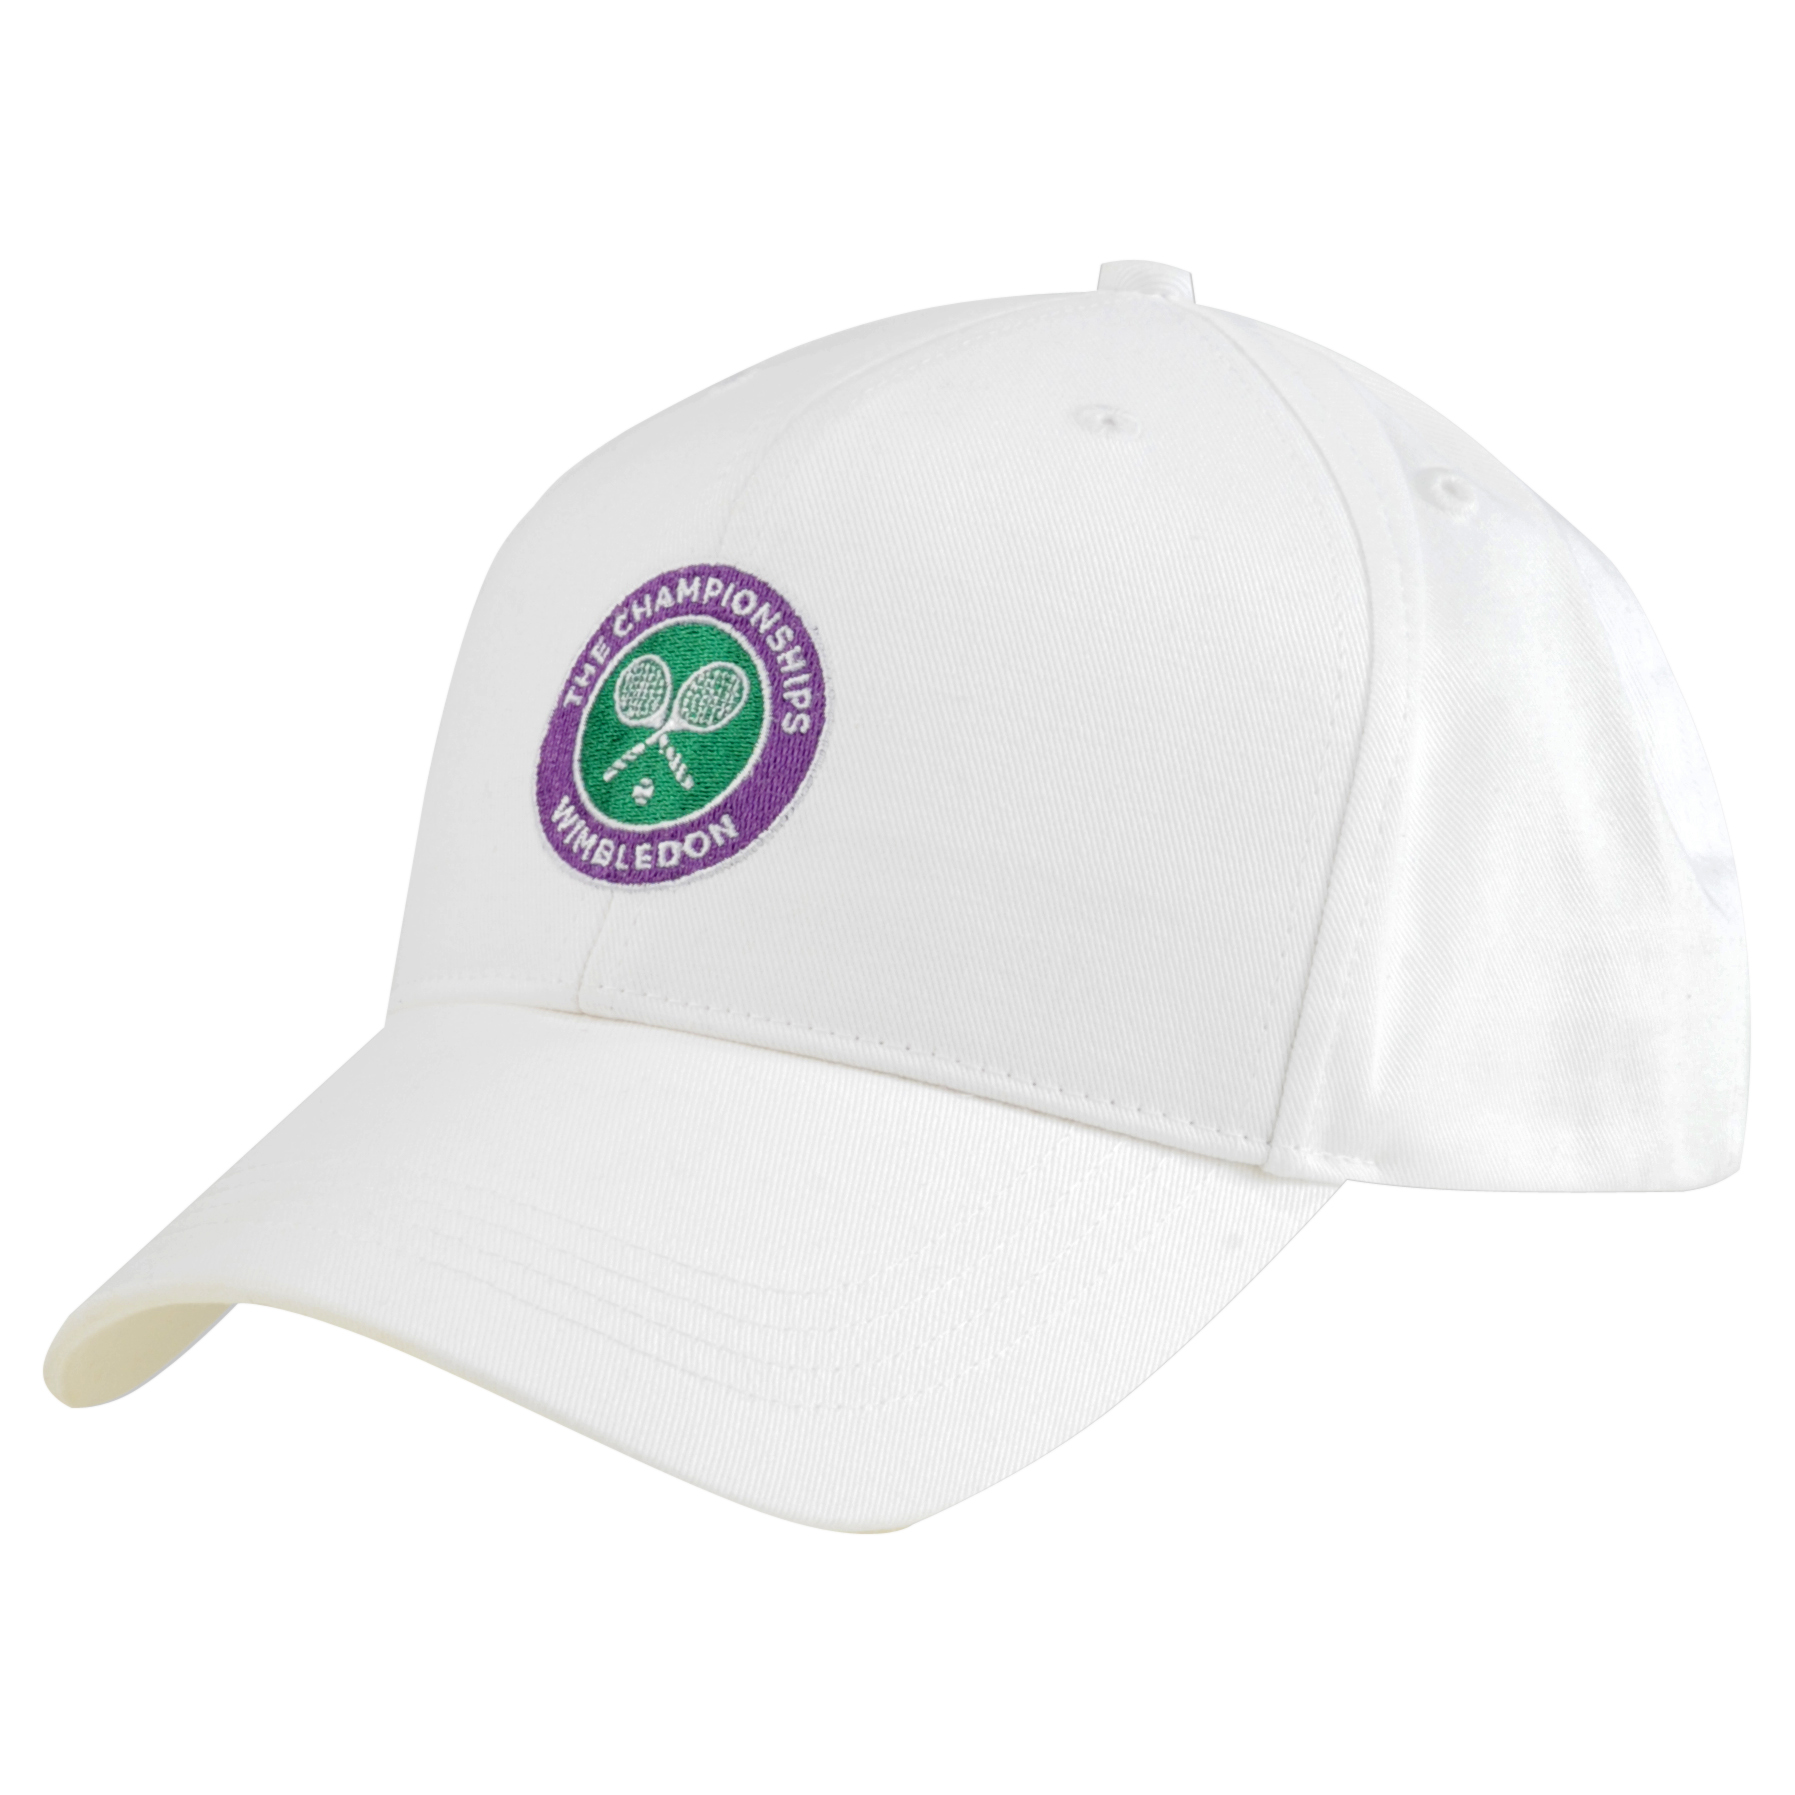 Wimbledon Crossed Rackets Cap White